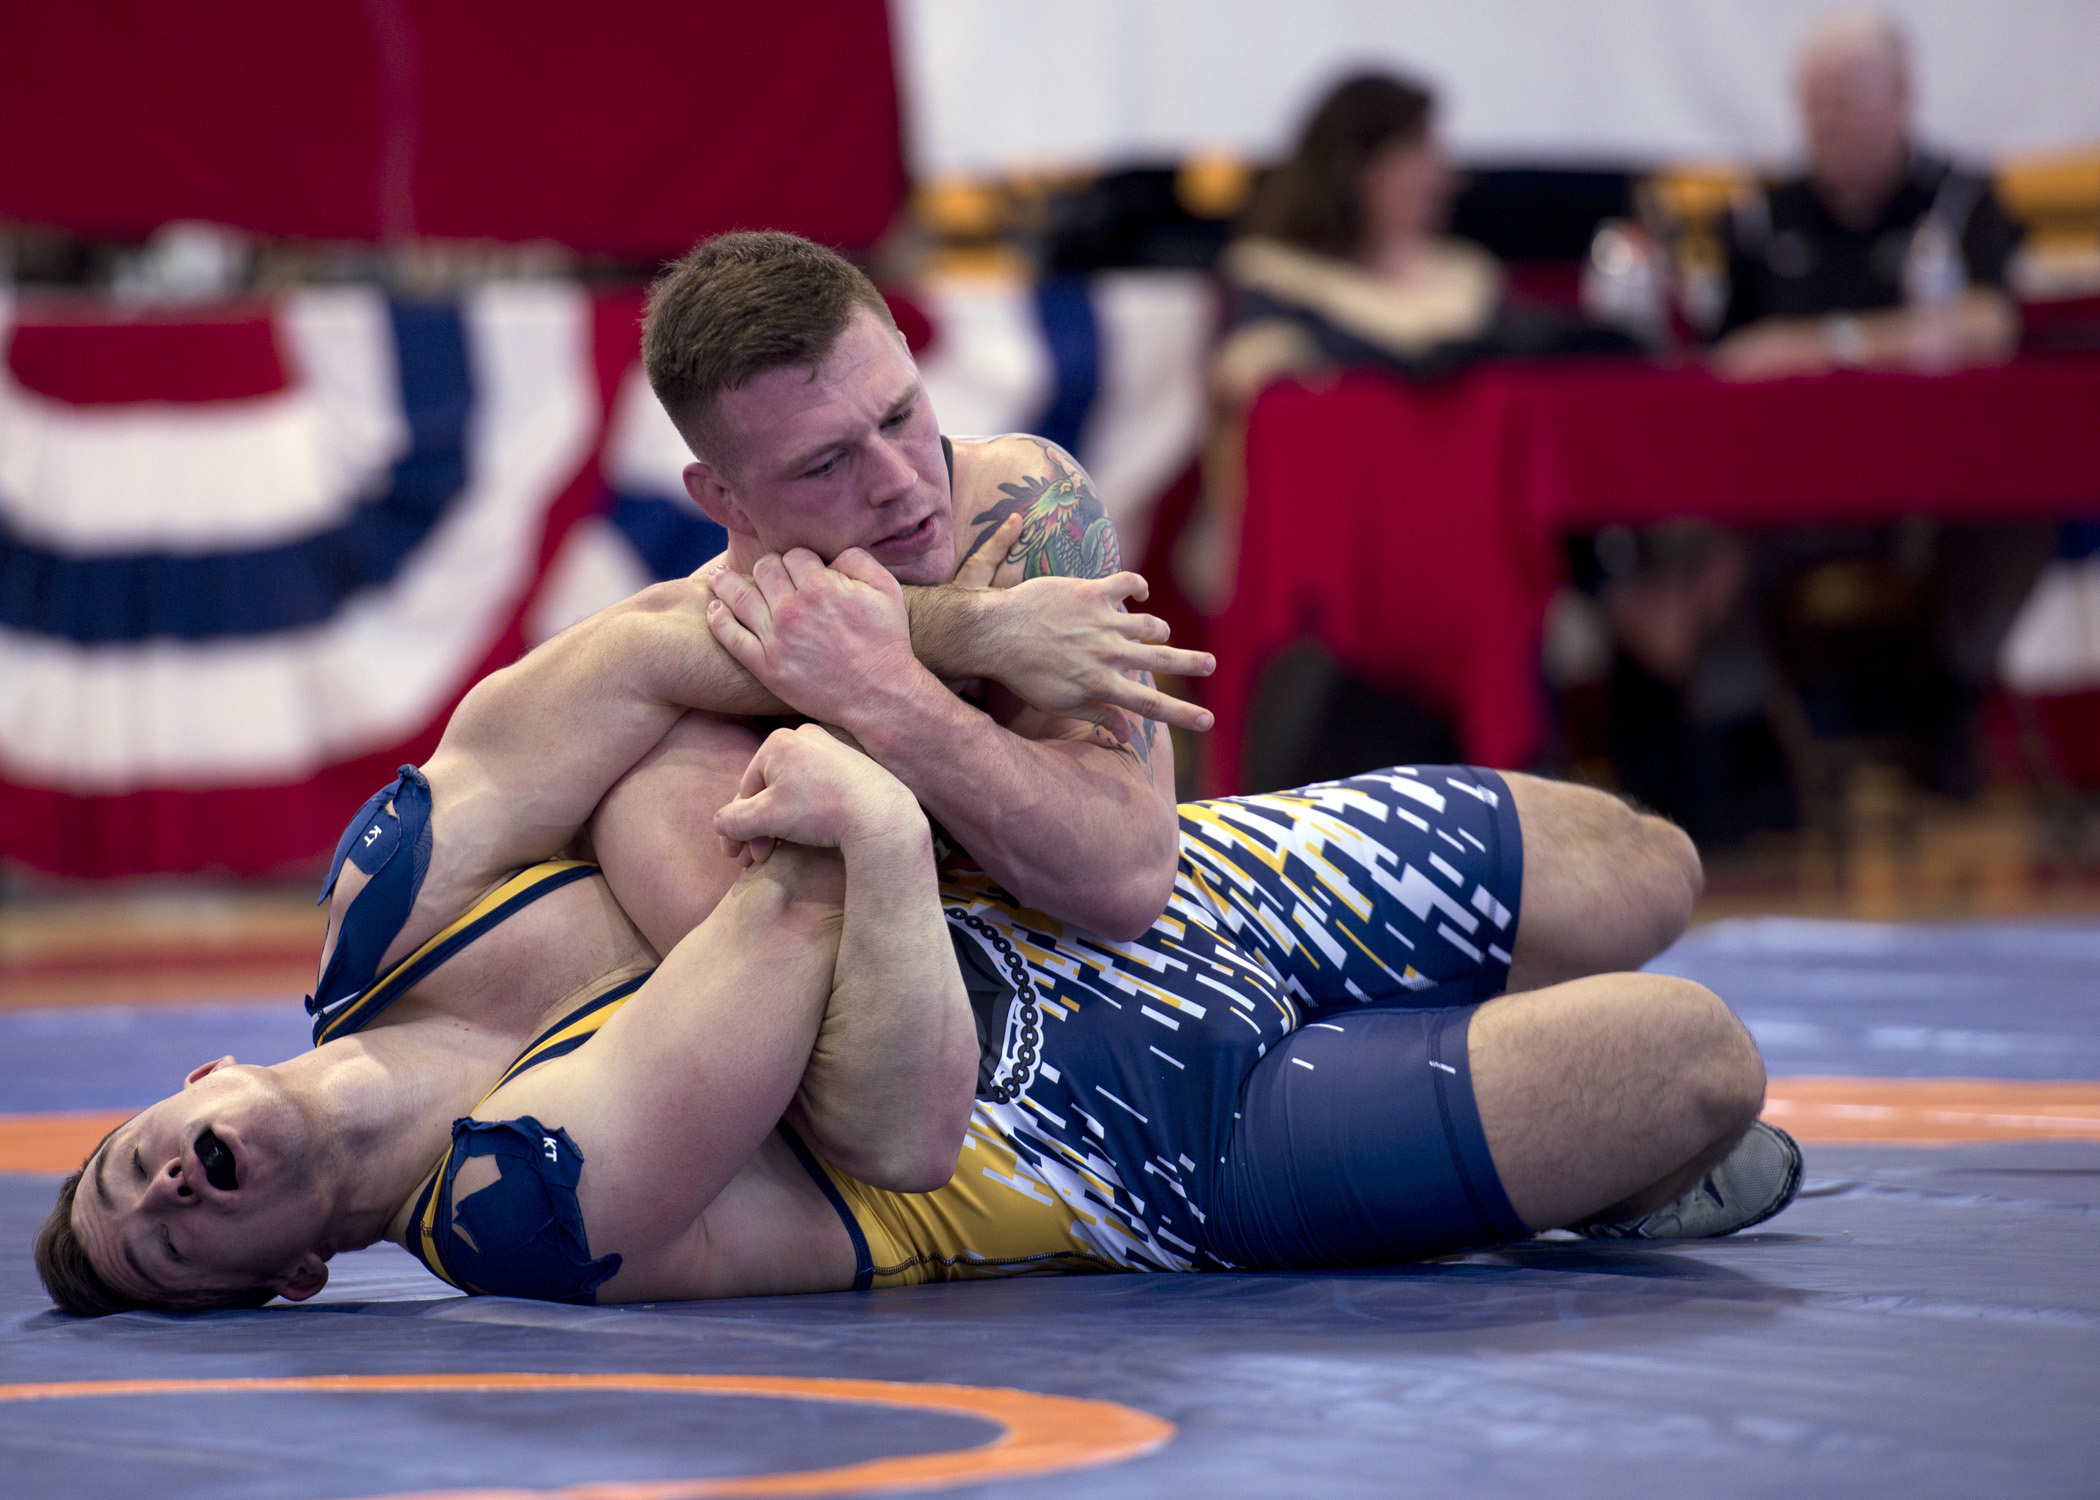 Marine Sgt. John Stefanowicz, from Kennerdell Pa., pins Navy Petty Officer Joseph Marques from Punta Gorda, Fla., during the 82 kg weight class of the 2018 Armed Forces Wrestling Championship Greco-Roman competition. Stefanowicz is a member of the Armed Forces Sports program's All-Marine wrestling team. AFS All-Service teams provide servicemembers opportunities to participate in national and international competitions including the Military World Games and the Olympics. (MCS1Gulianna Dunn/Navy)